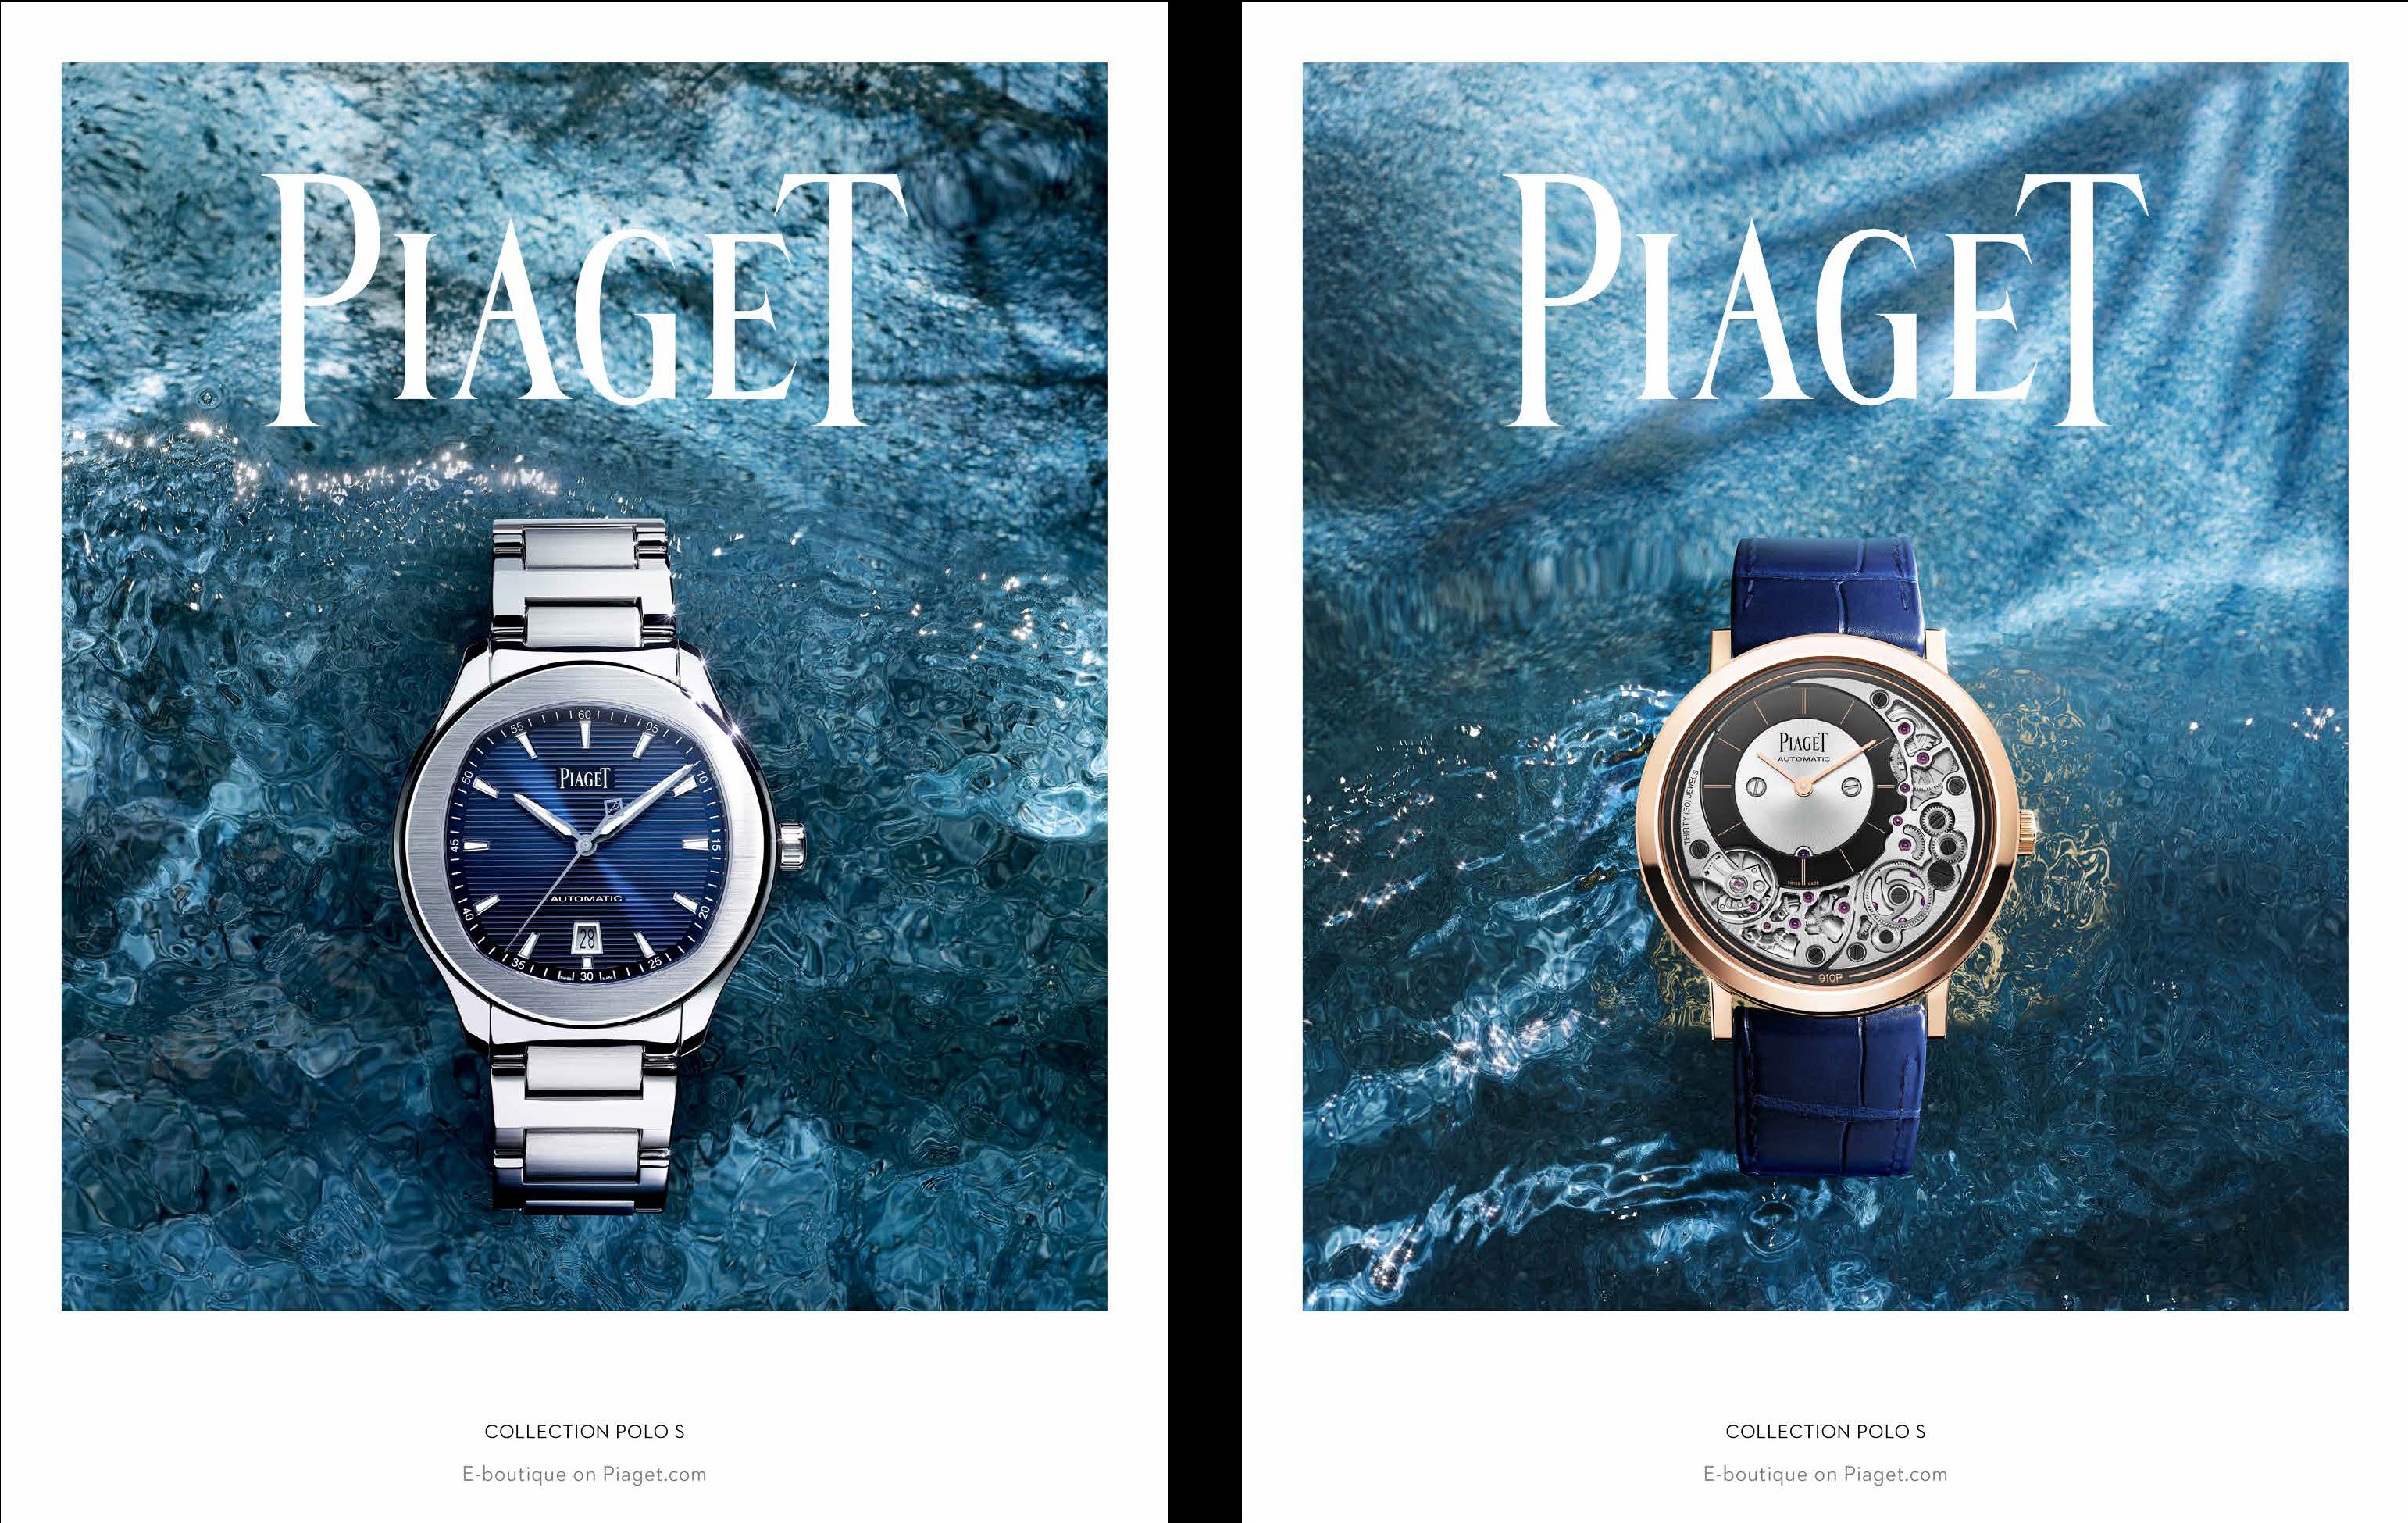 Piaget 2018/photos Eric Sauvage